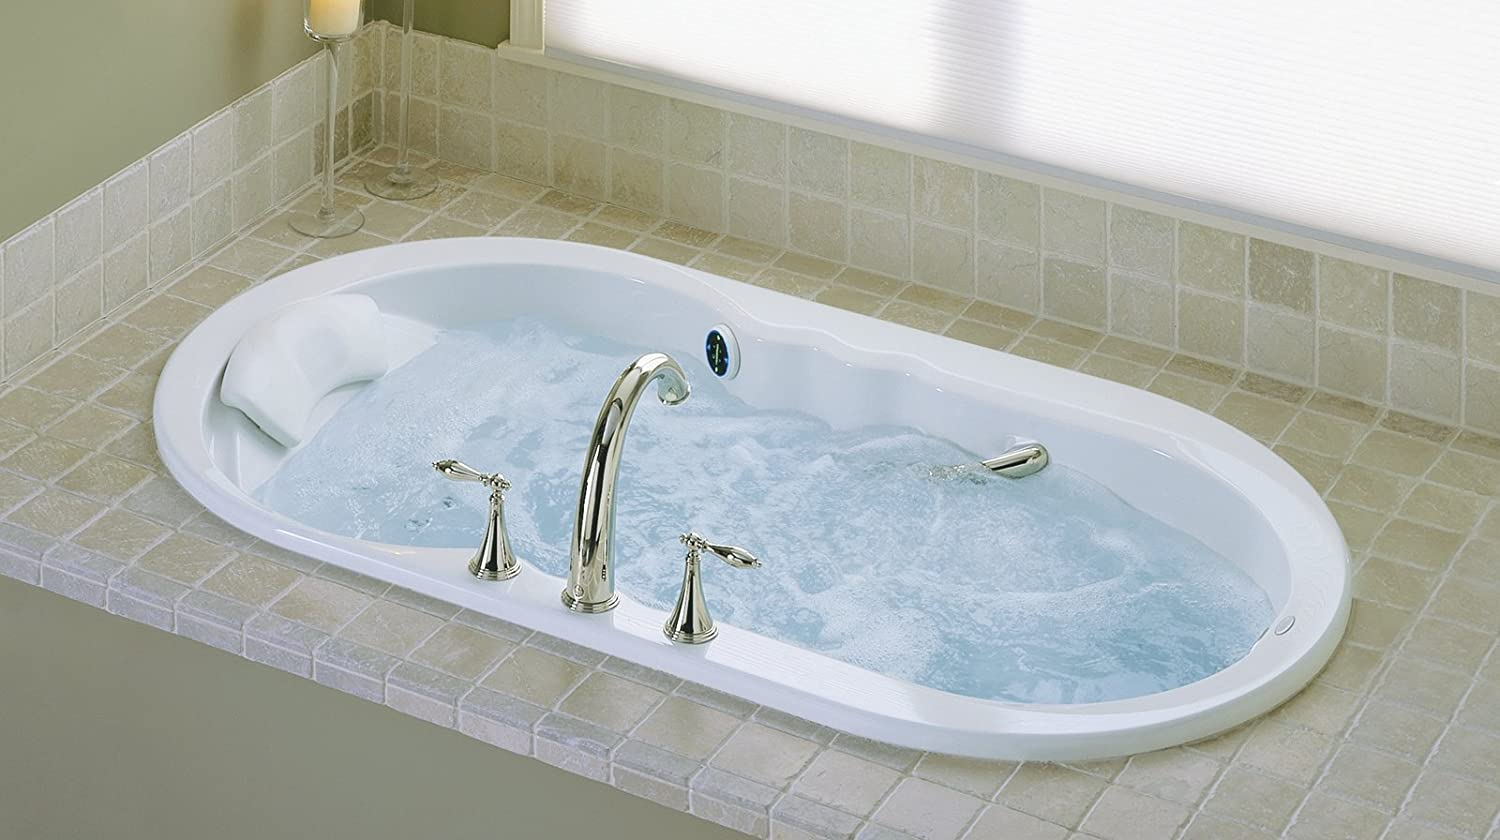 Old Fashioned Kohler Finial Faucet Gallery - Faucet Collections ...